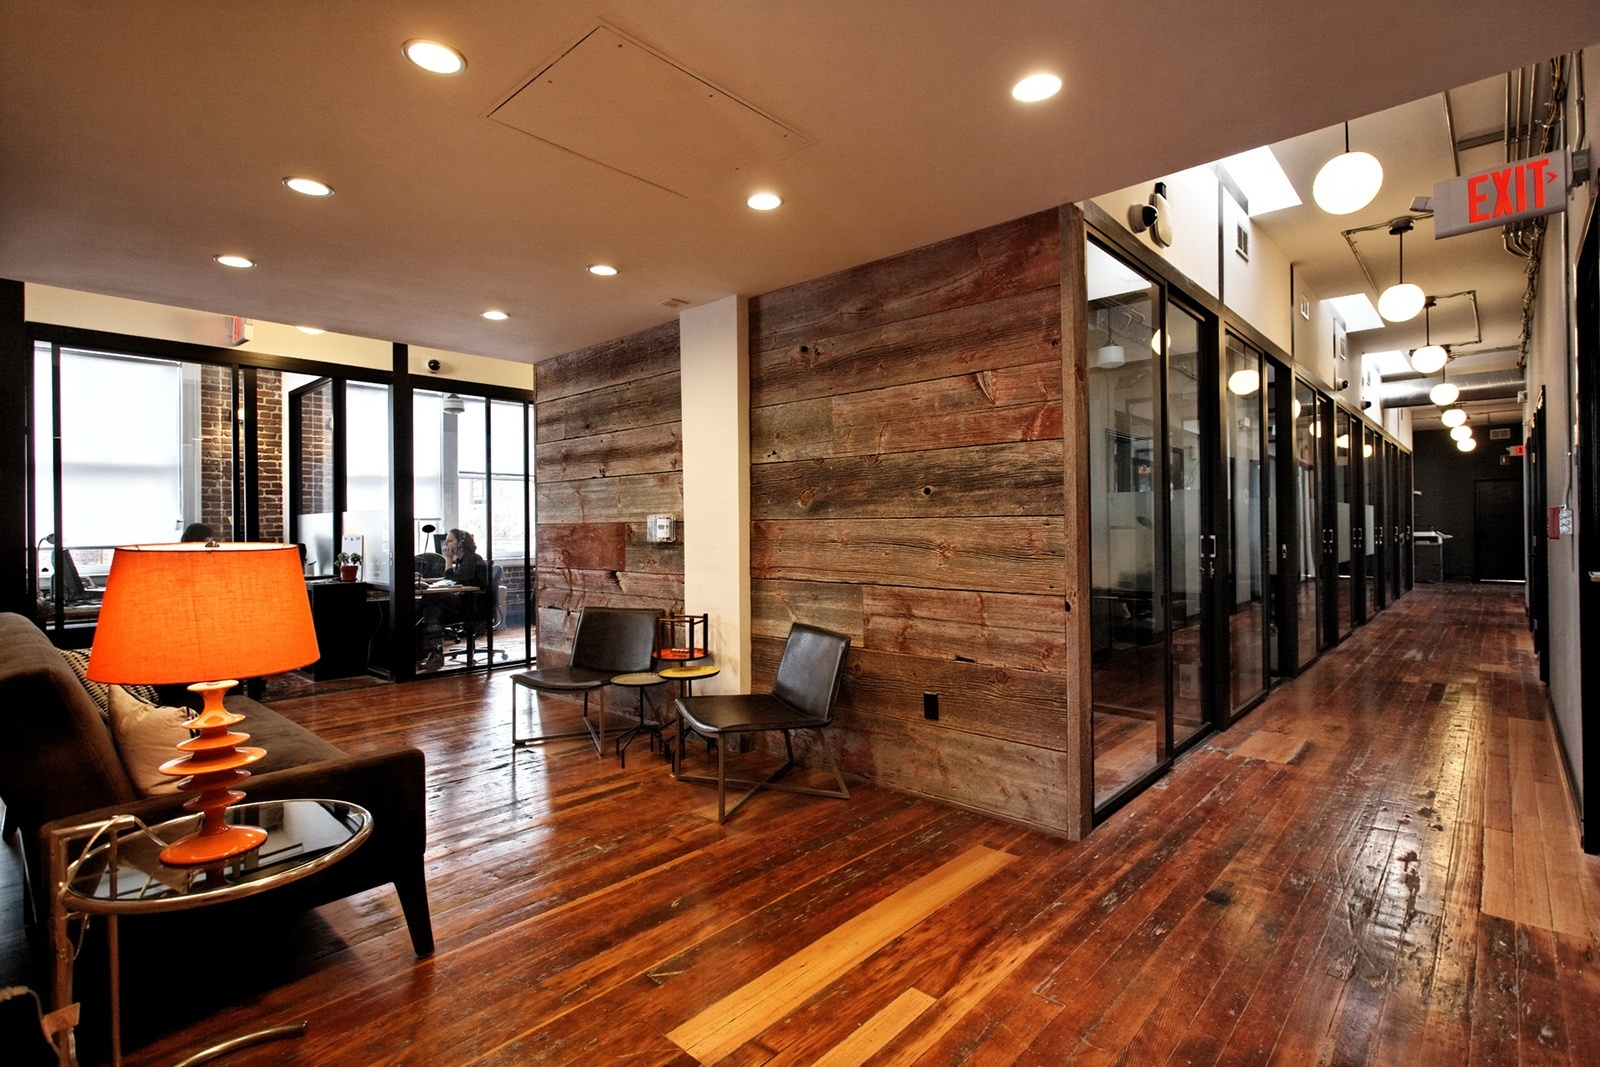 A look inside wework s soma coworking space officelovin 39 for Office space